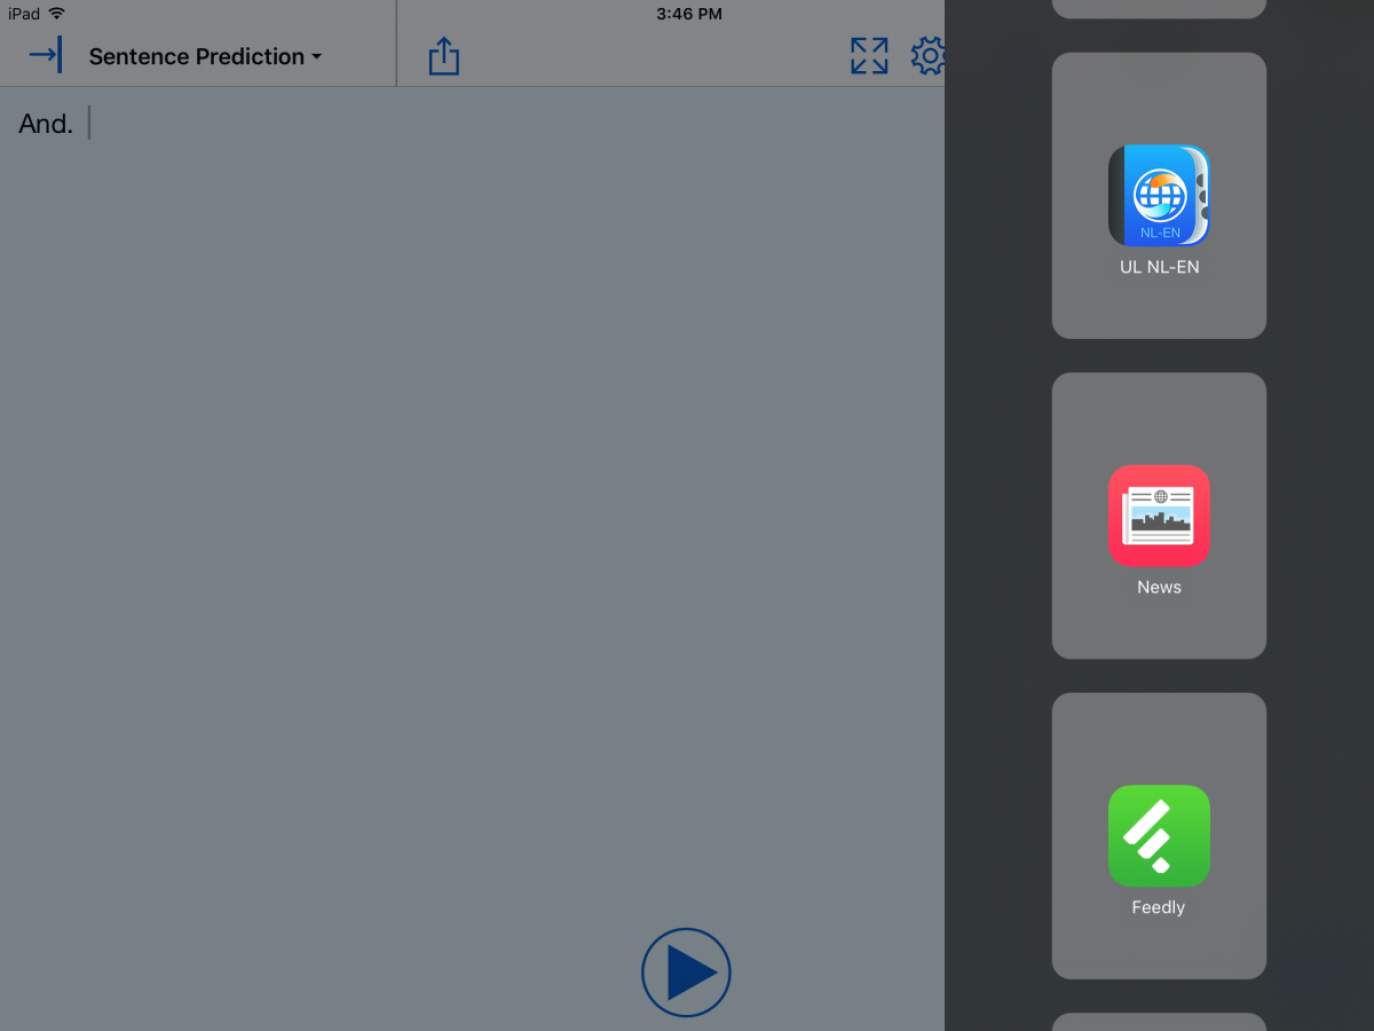 Tips to stop accidentally triggering unwanted iOS features